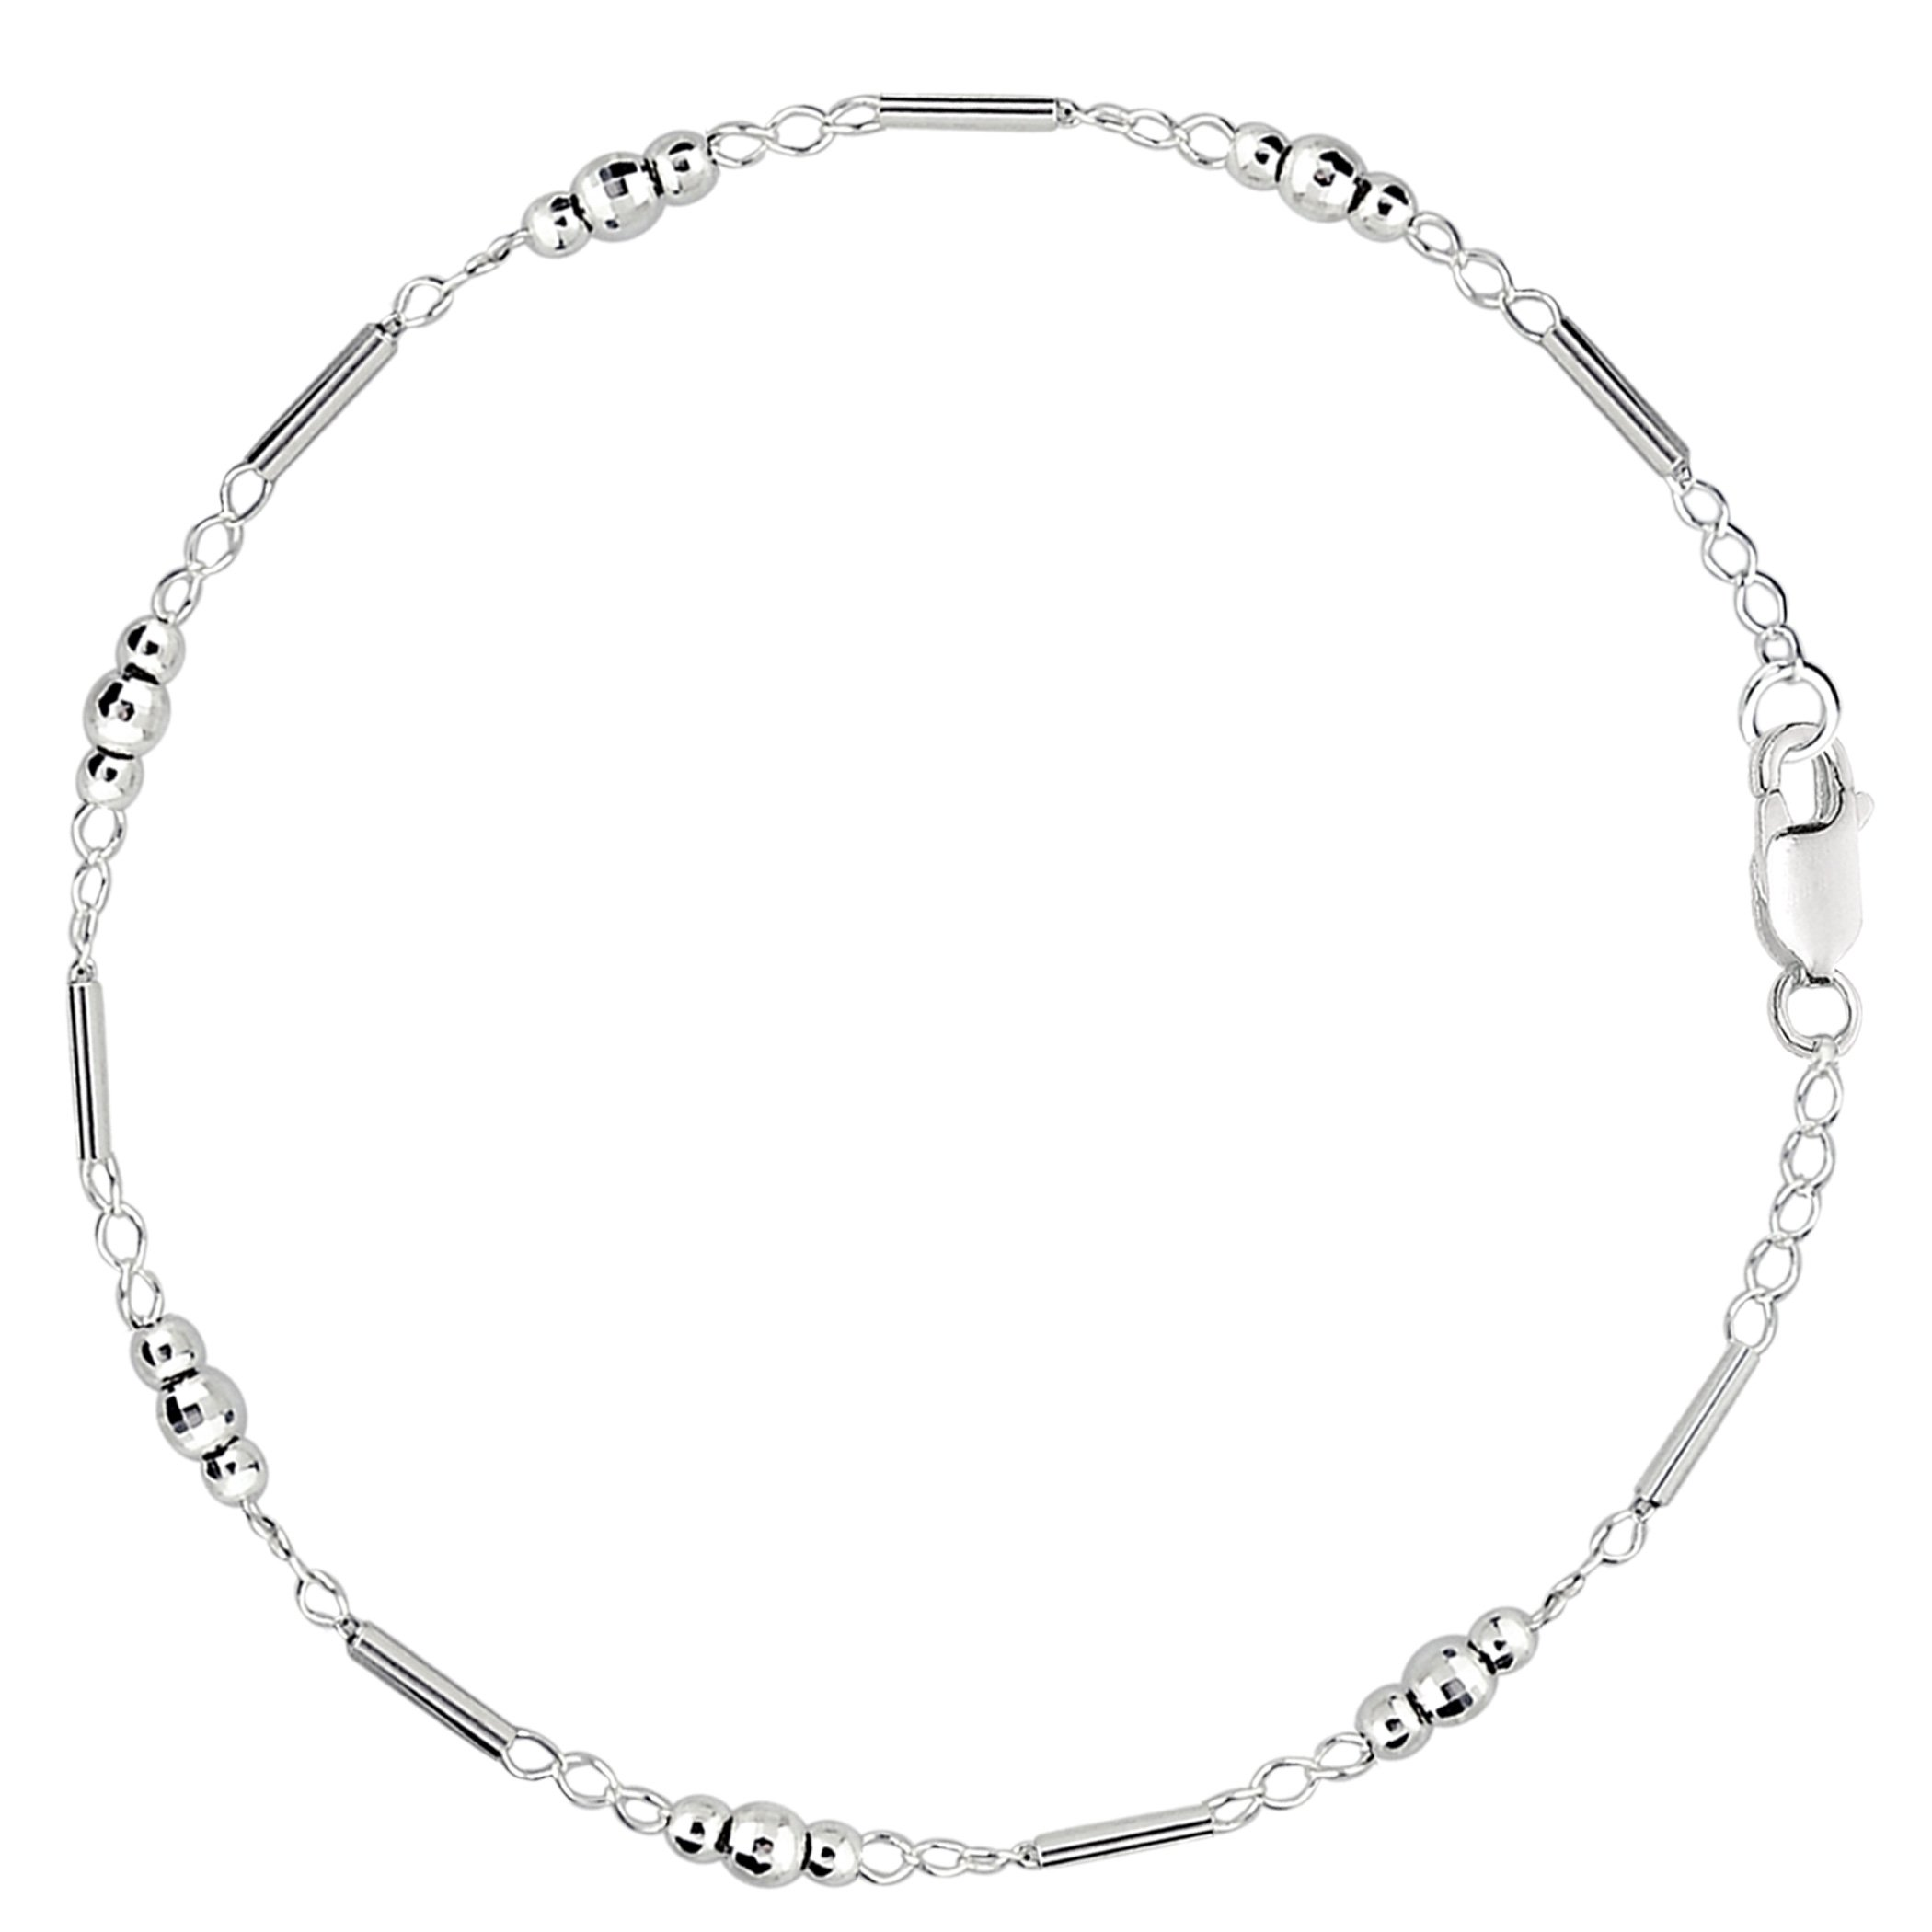 Fancy Link With Faceted Beads Chain Anklet In Sterling Silver, 11''